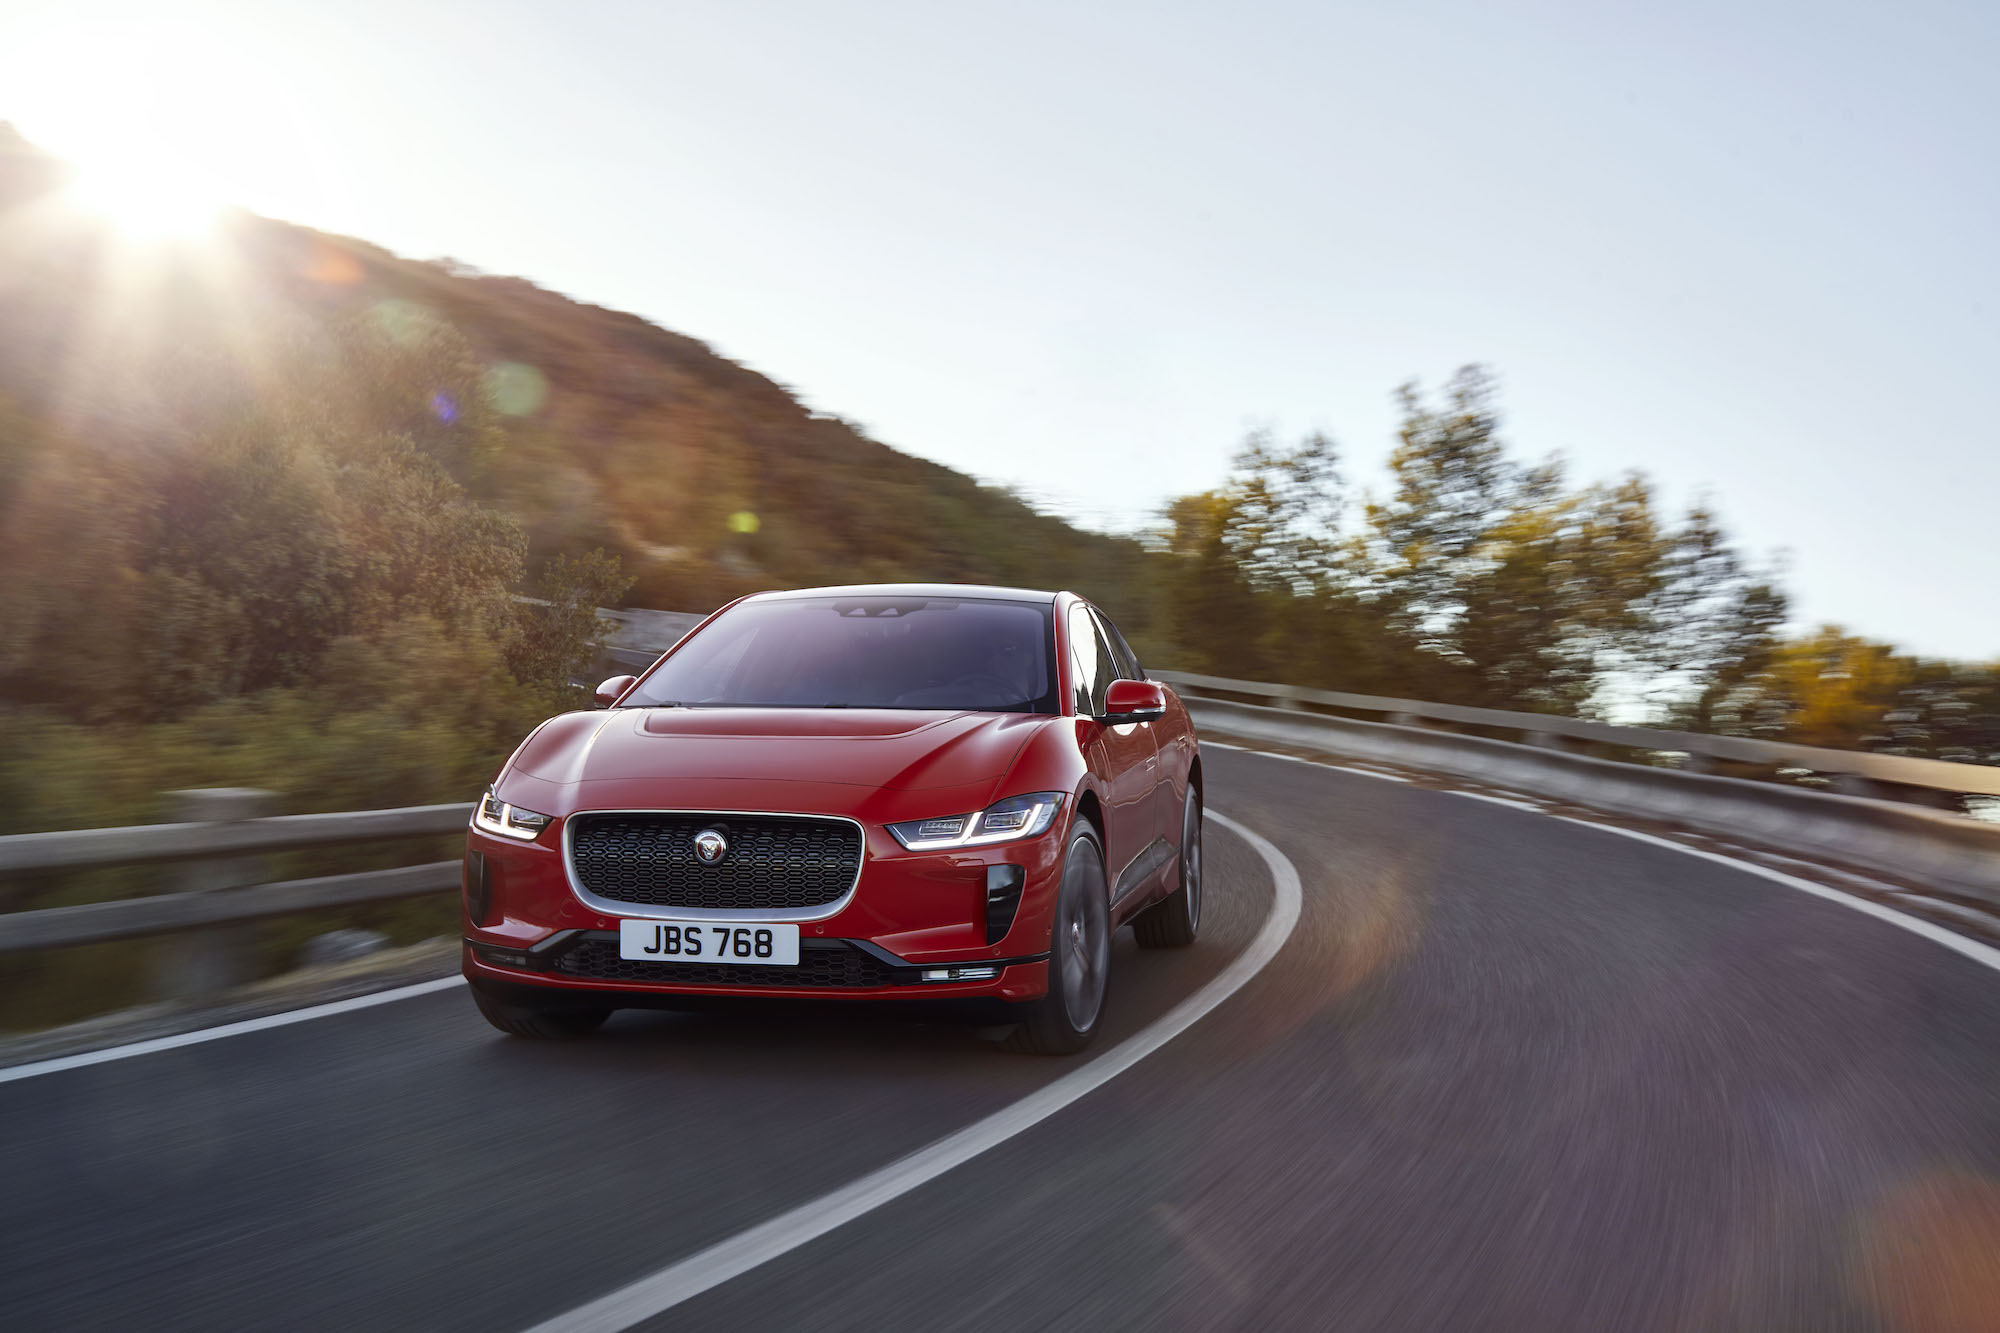 Jaguar I-Pace packs 240 miles of range, AWD performance